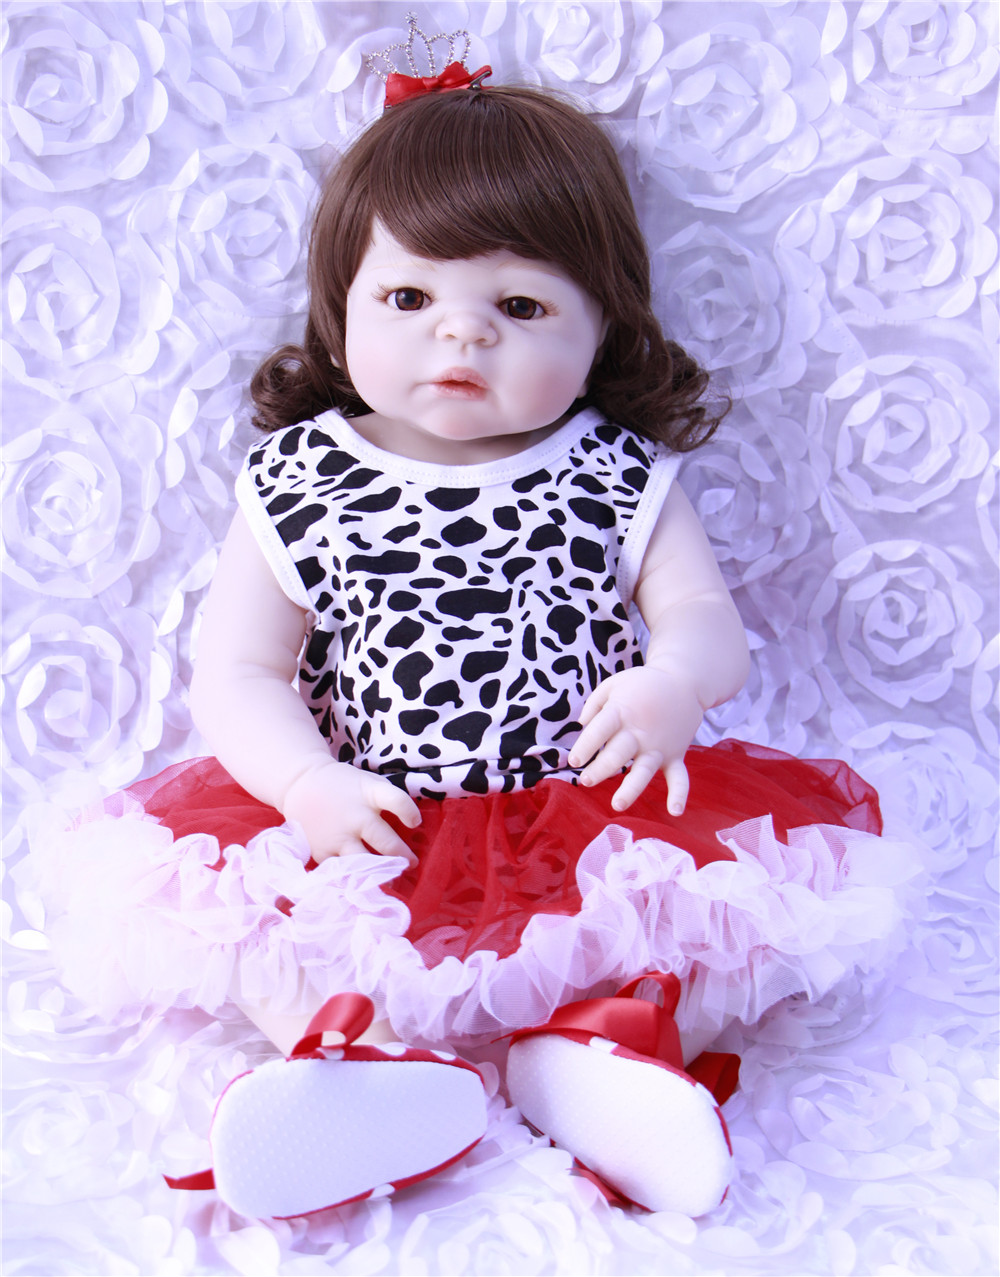 Adorable Dollmail 55cm Bebe Reborn Girl Doll Handmade Full Silicone Reborn Baby Doll Bonecas In Fashion Clothes Toys For Girls